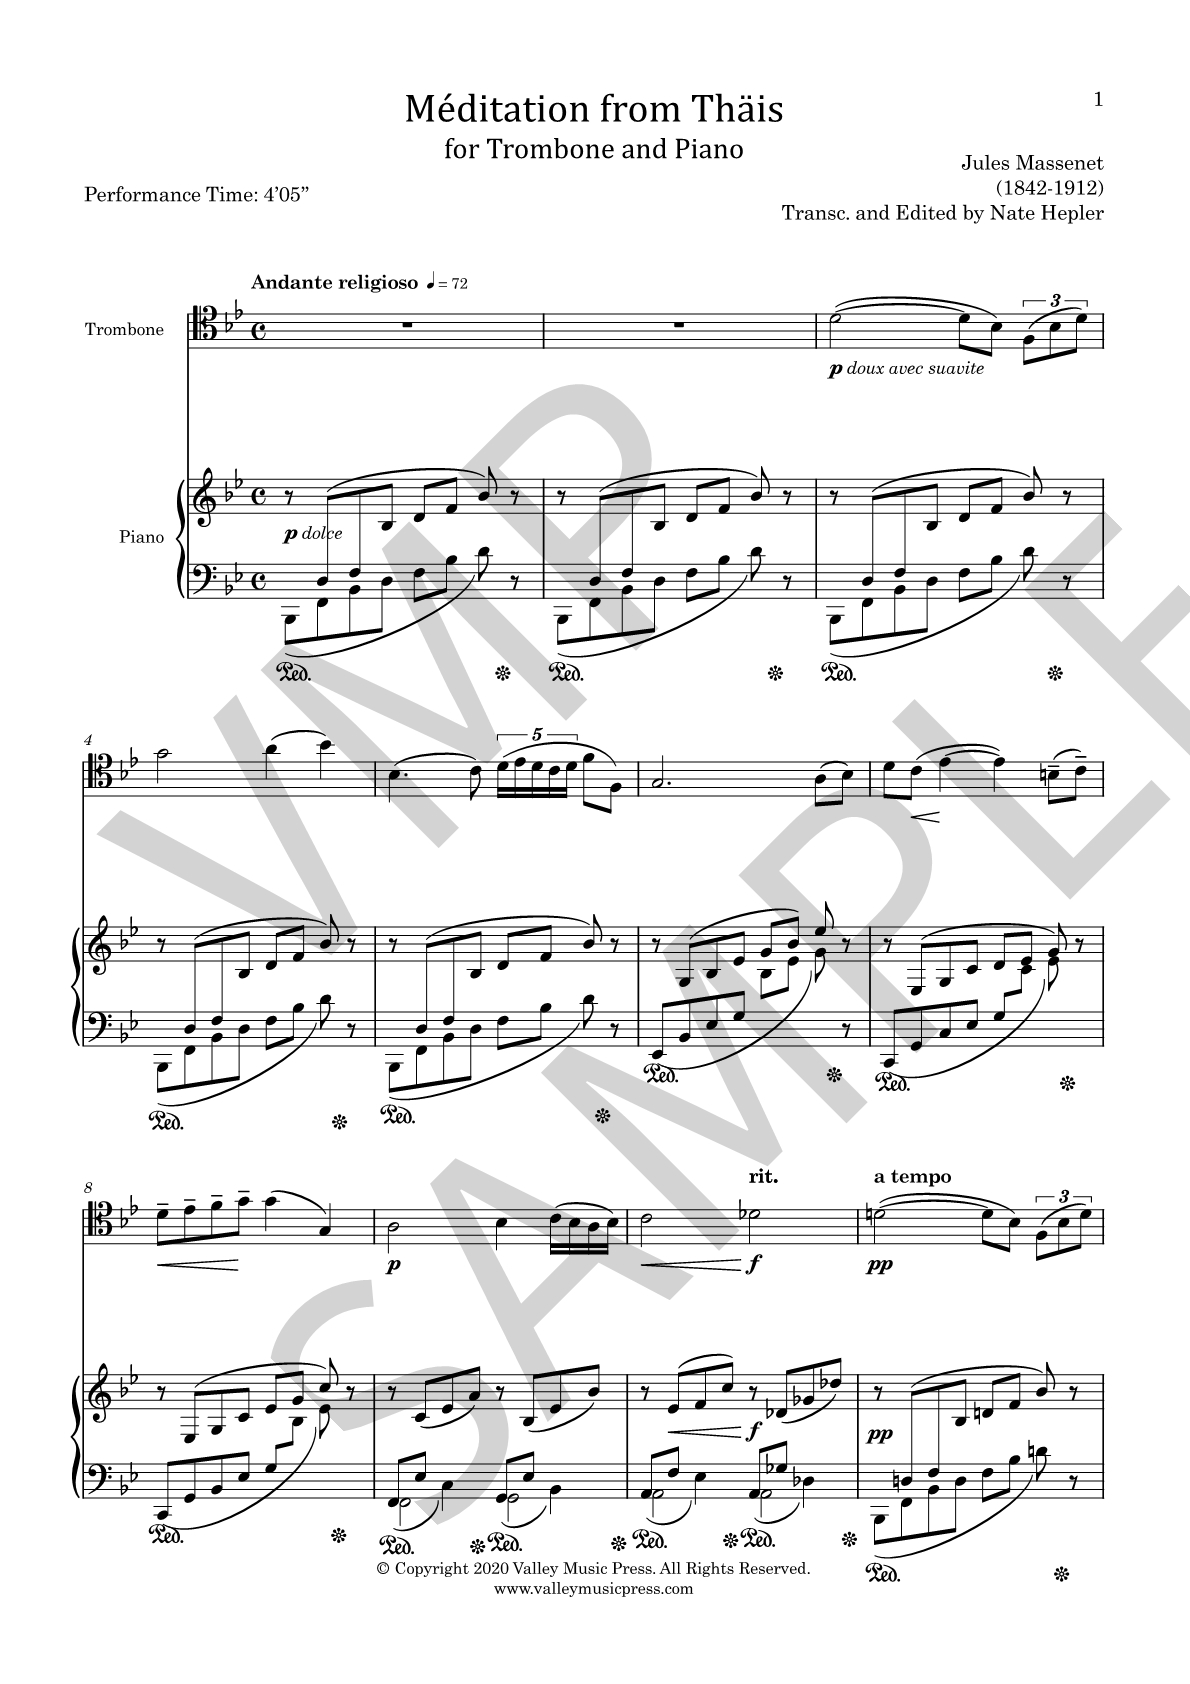 Massenet - Meditation from Thais (Trb & Piano) - Click Image to Close